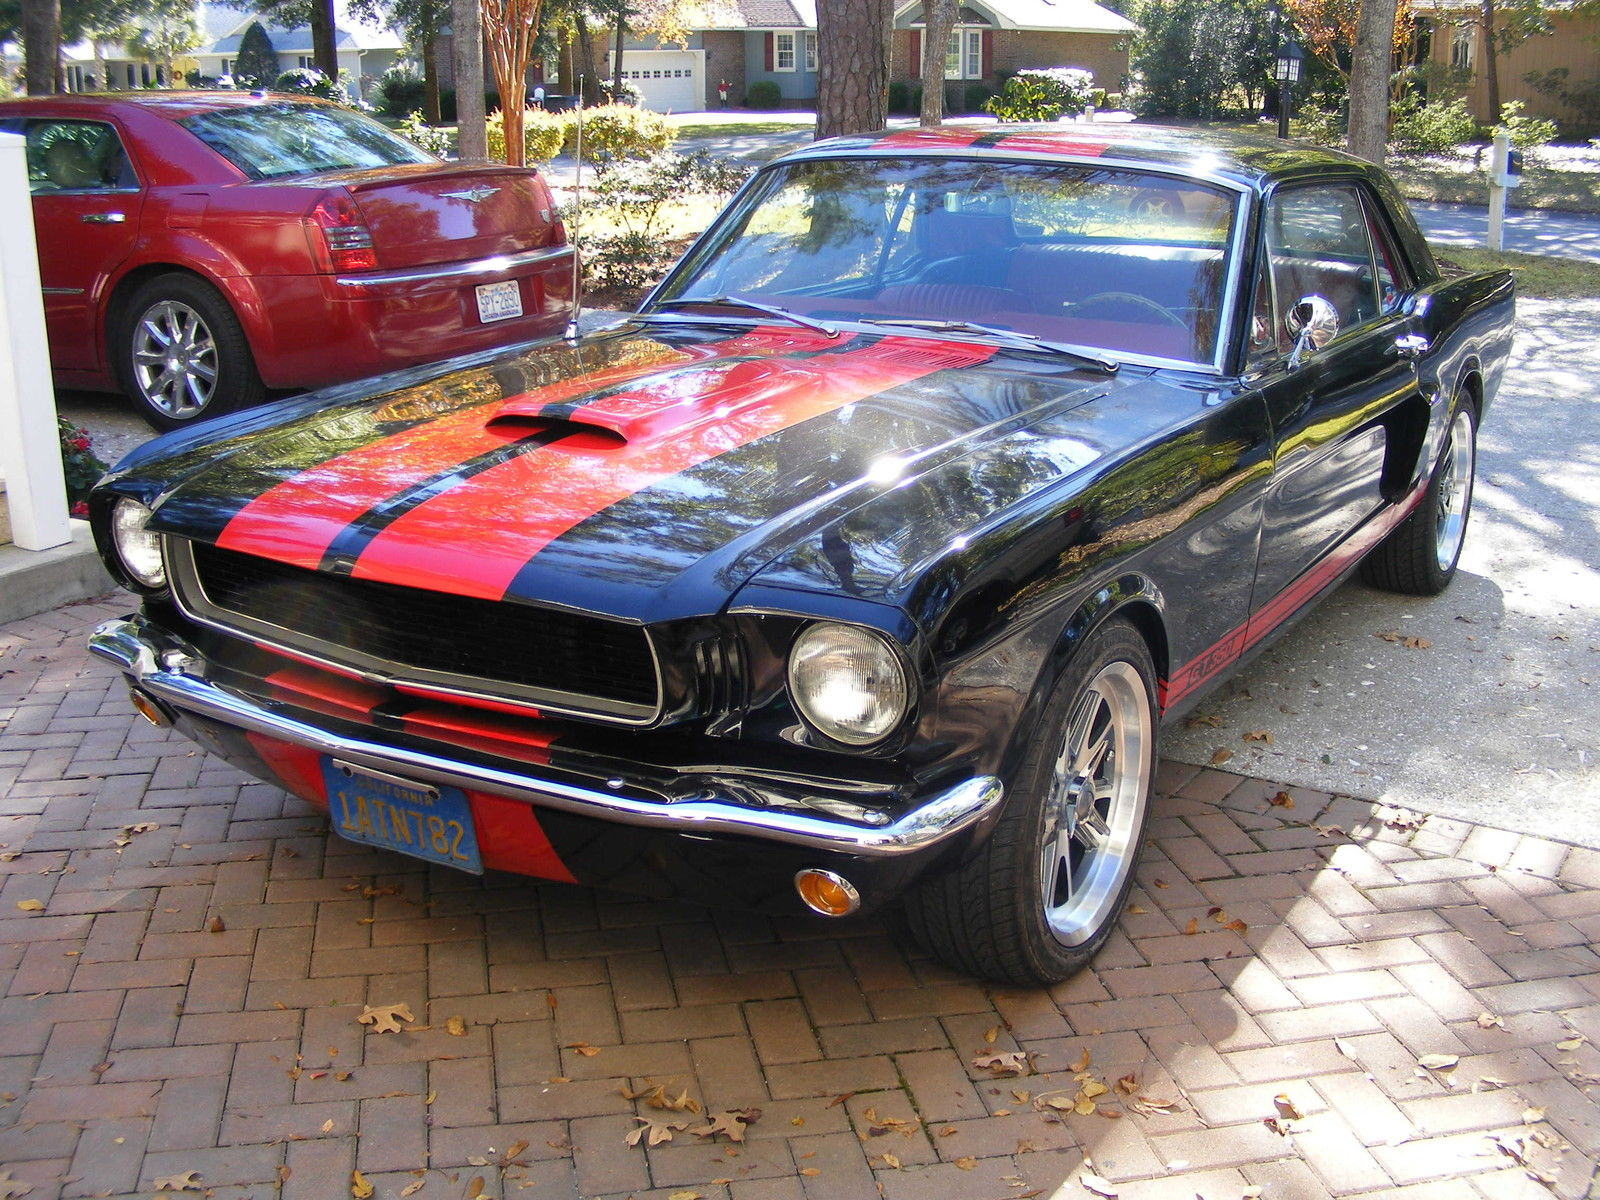 Black Mustang Coupe C Code V Auto Gt Tribute No Reserve on 1966 Mustang Vin Location